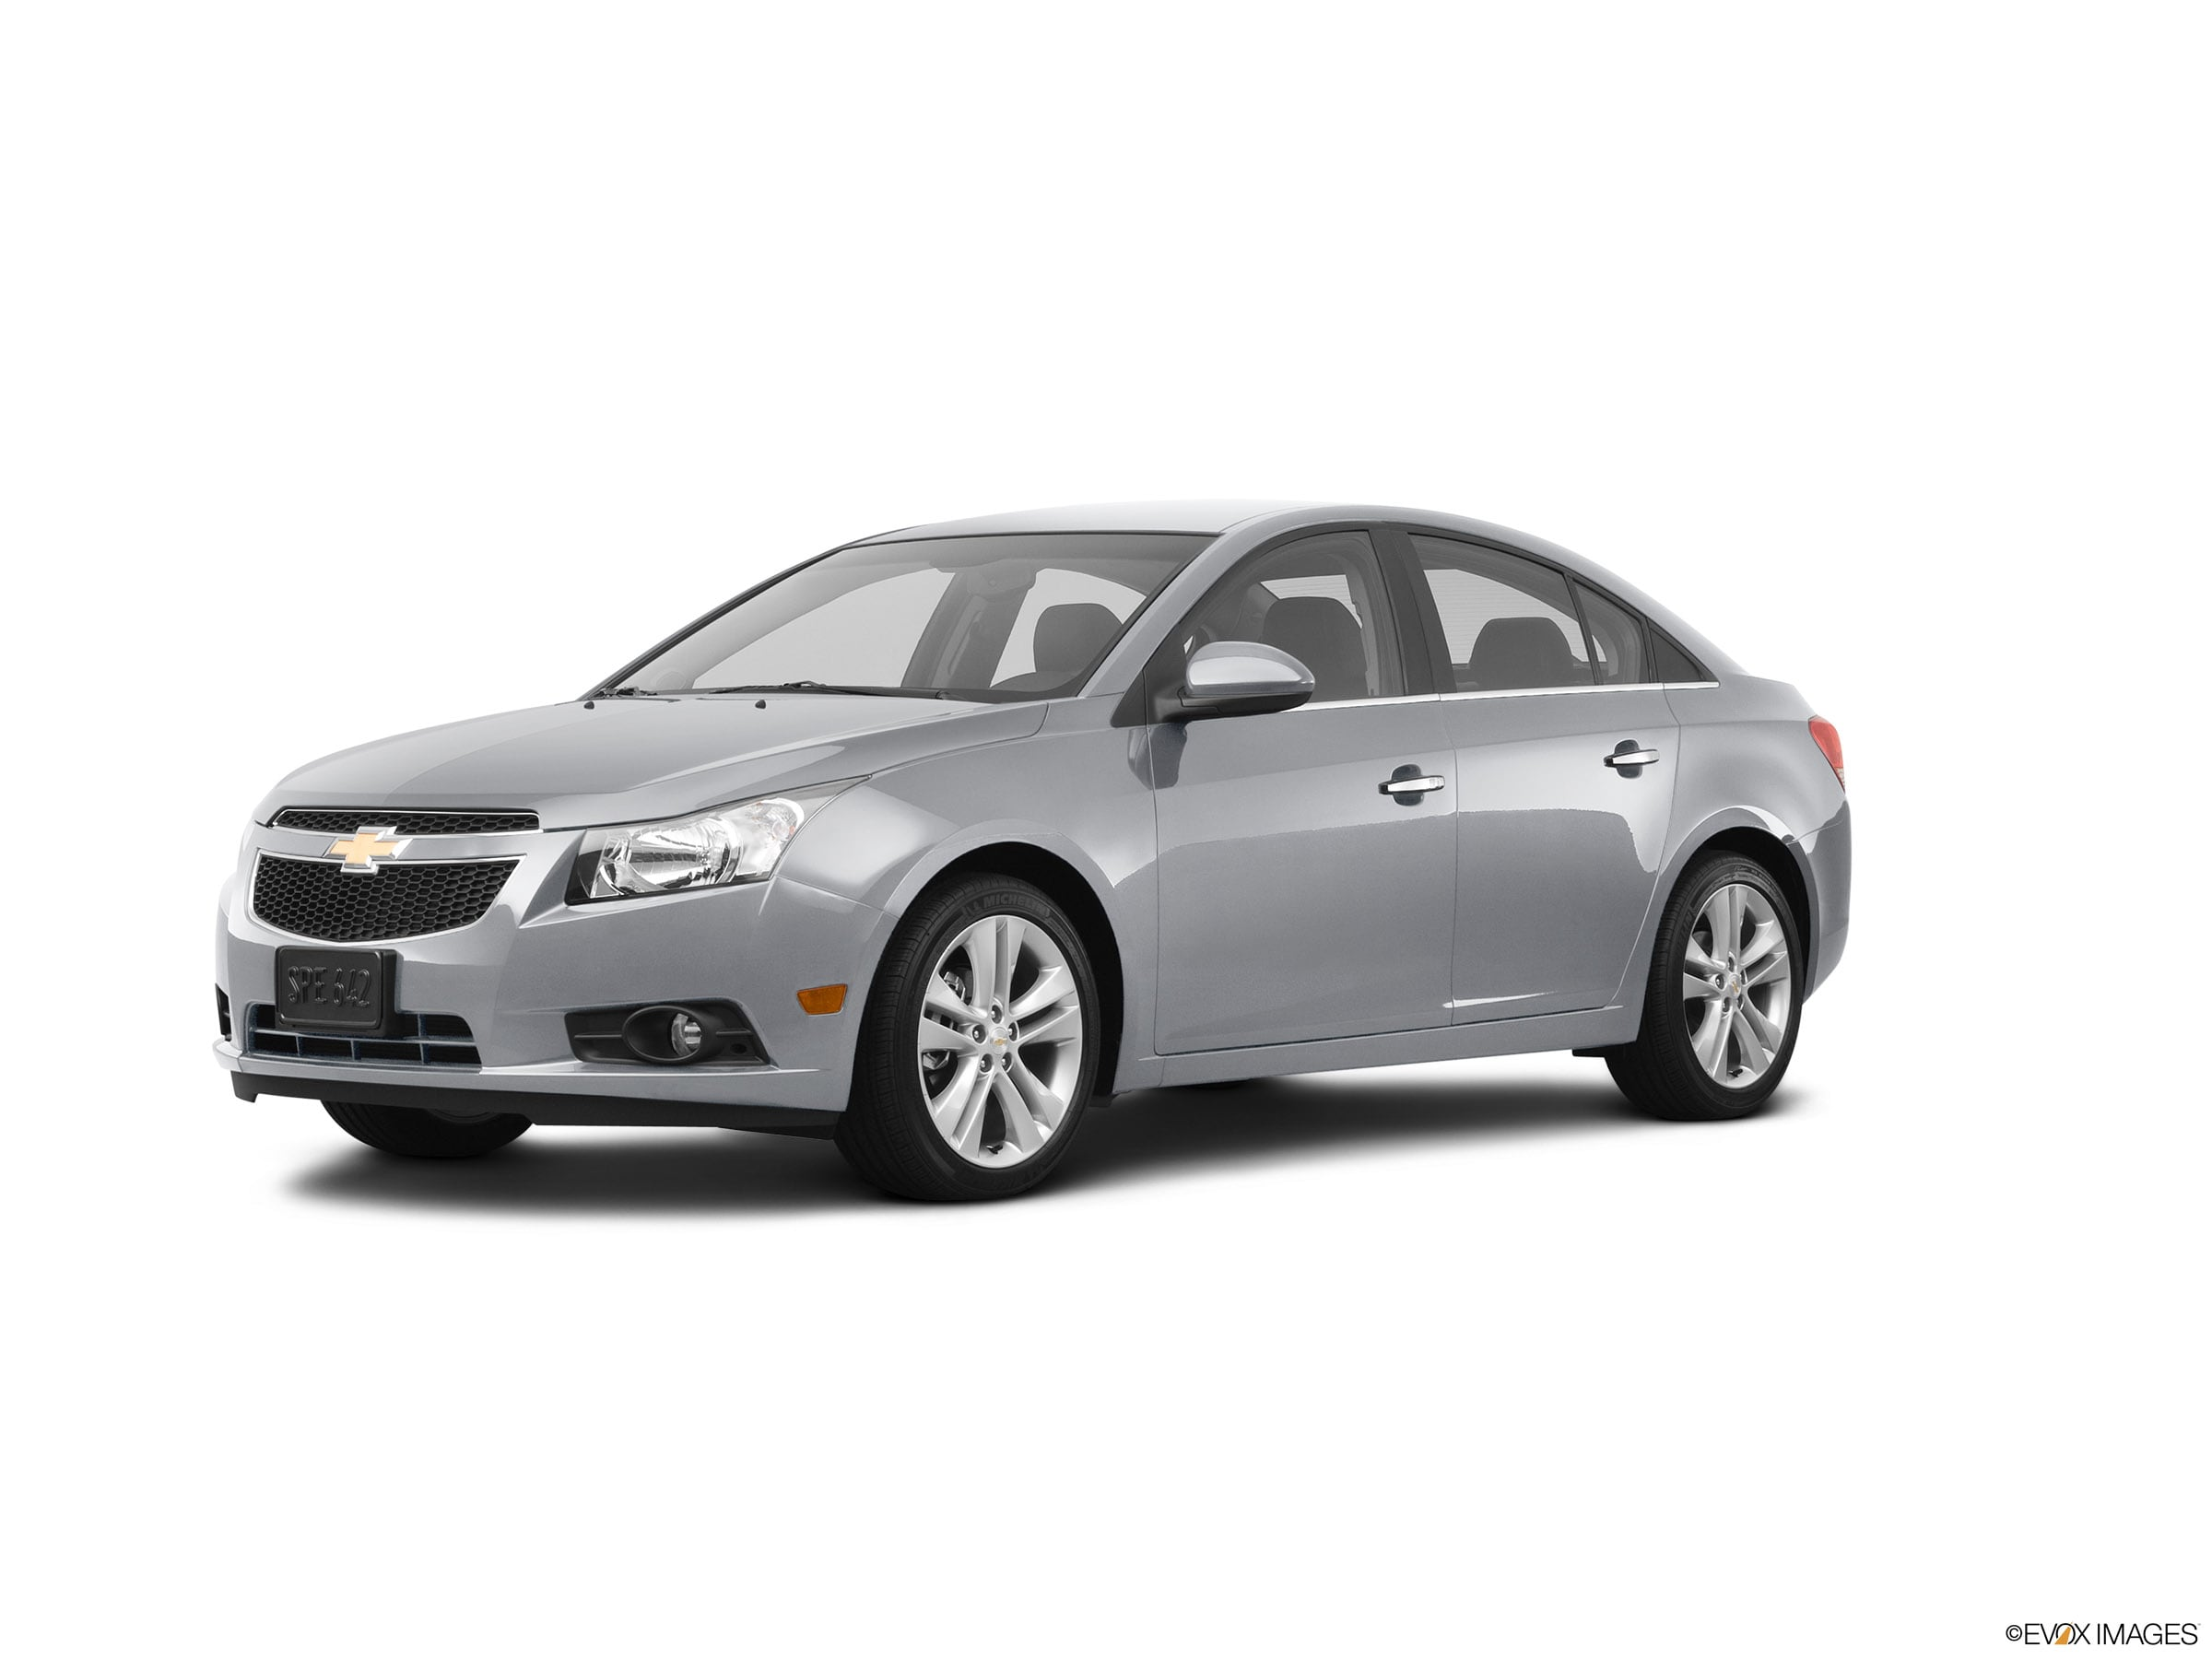 Used 2012 Chevrolet Cruze For Sale At Tasca Automotive Group Vin 1g1ph5sc8c7330033